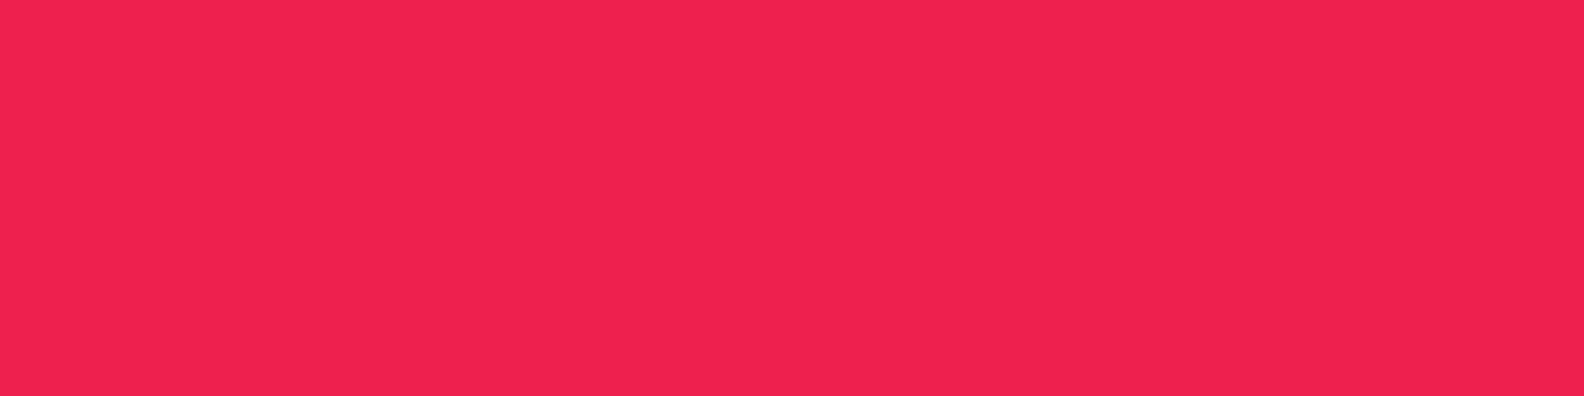 1584x396 Red Crayola Solid Color Background